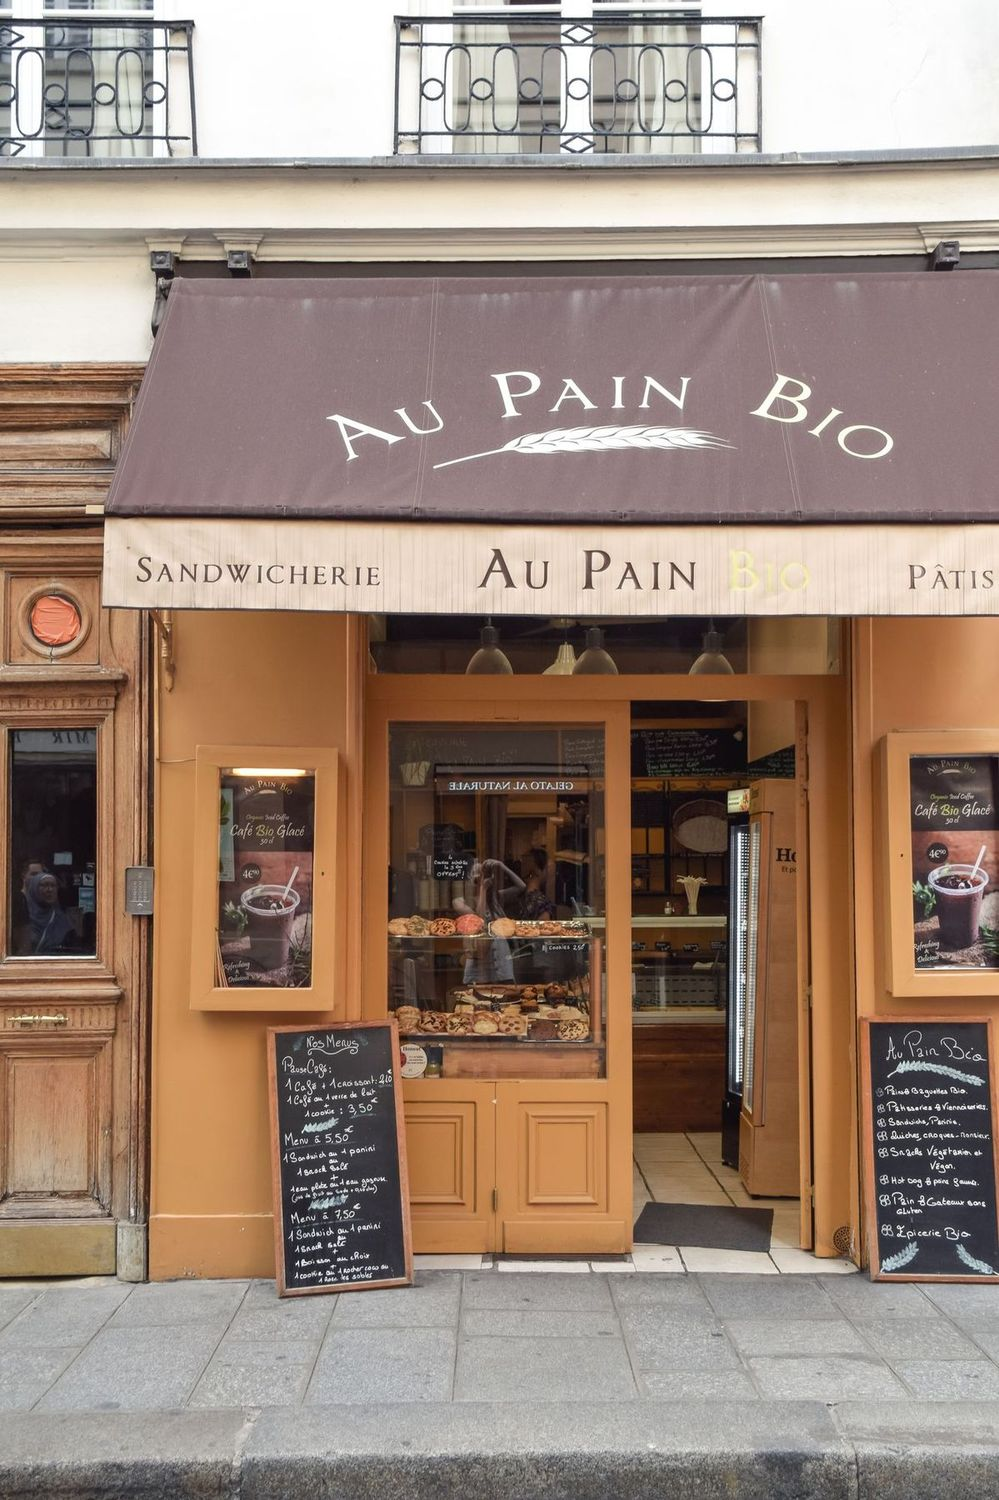 Au Pain Bio, Île Saint-Louis, Paris